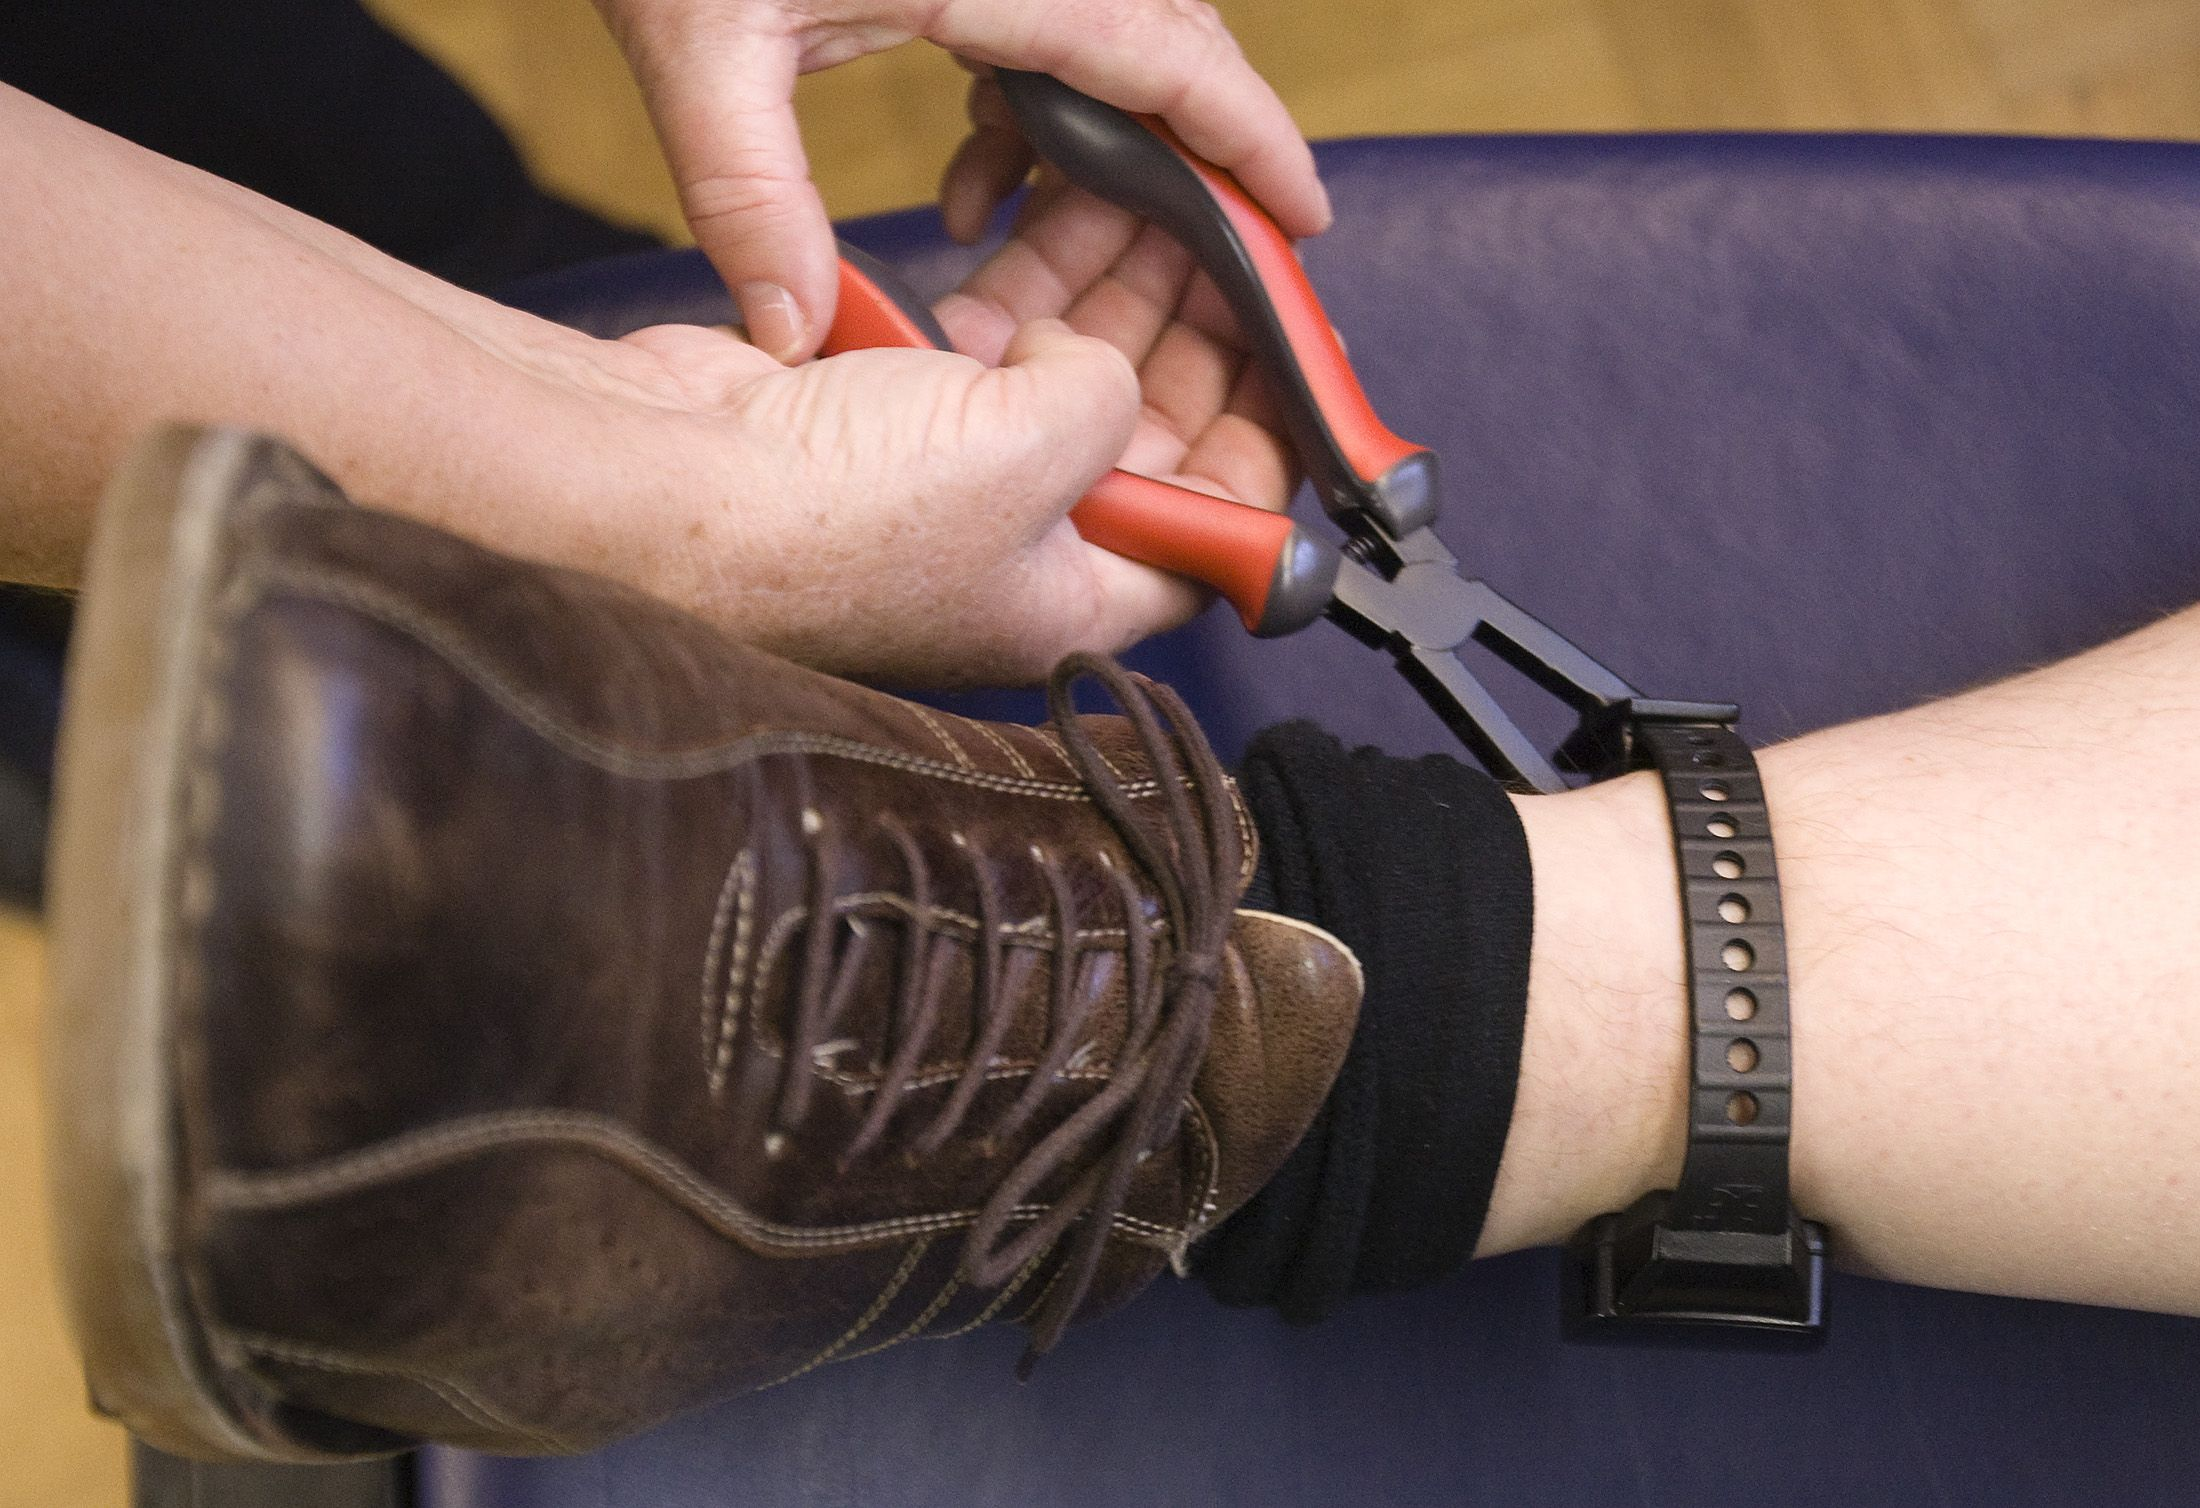 house how dui what bracelet parole arrest including an ankle to monitor footbg bypass is or